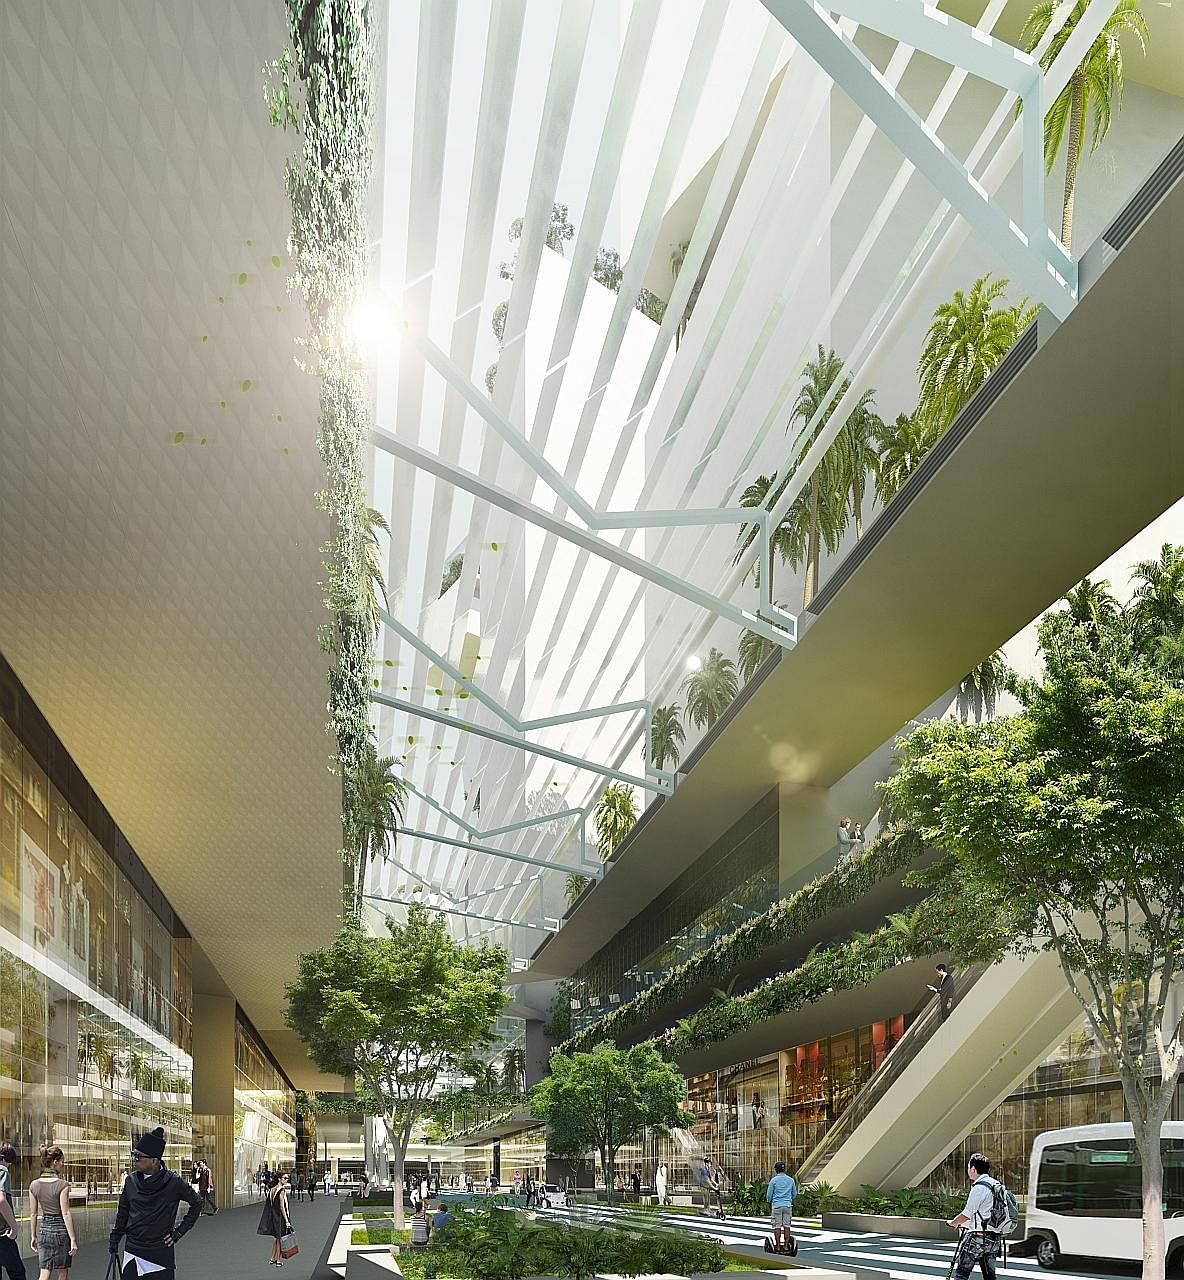 The vision for the district incorporates much greenery and will also encourage car-lite and active mobility initiatives. The URA liked the KCAP team's focus on walkable streets and interactive public spaces for social activities.